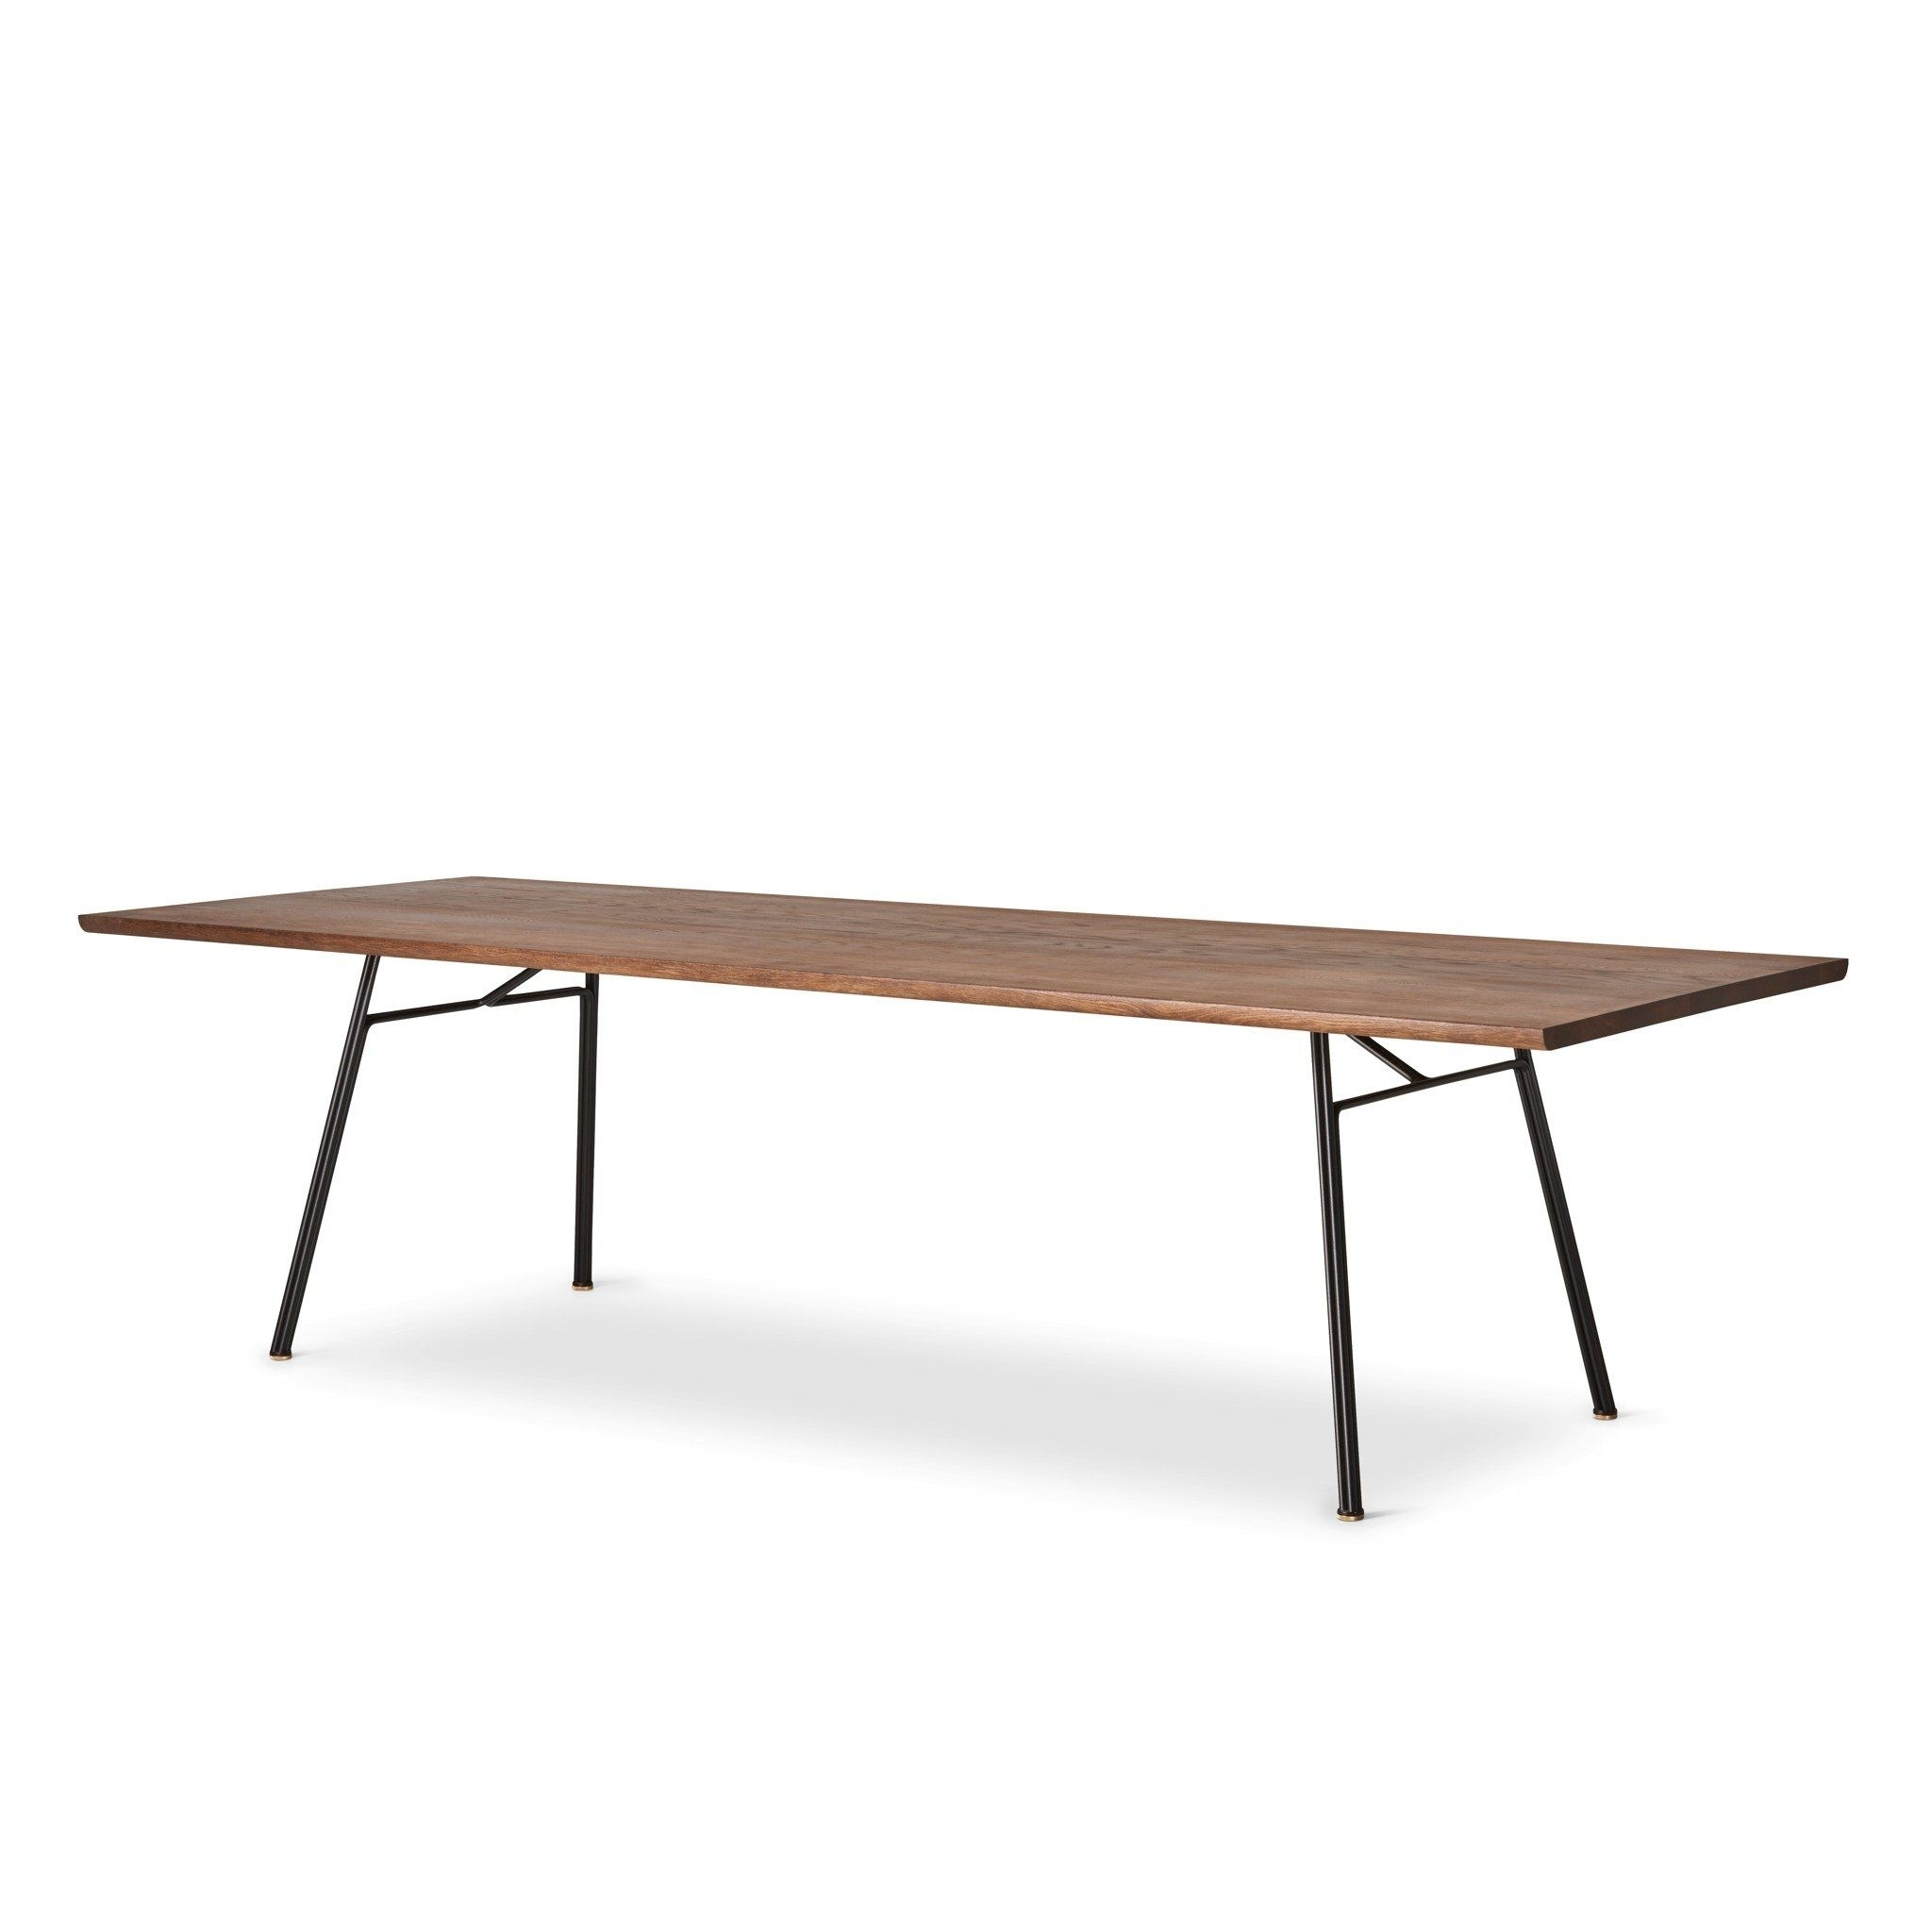 Corduroy Table Rectangular W90 Cmdk3 | Haus, Solid Wood And Woods In Latest Lassen Extension Rectangle Dining Tables (Image 1 of 20)